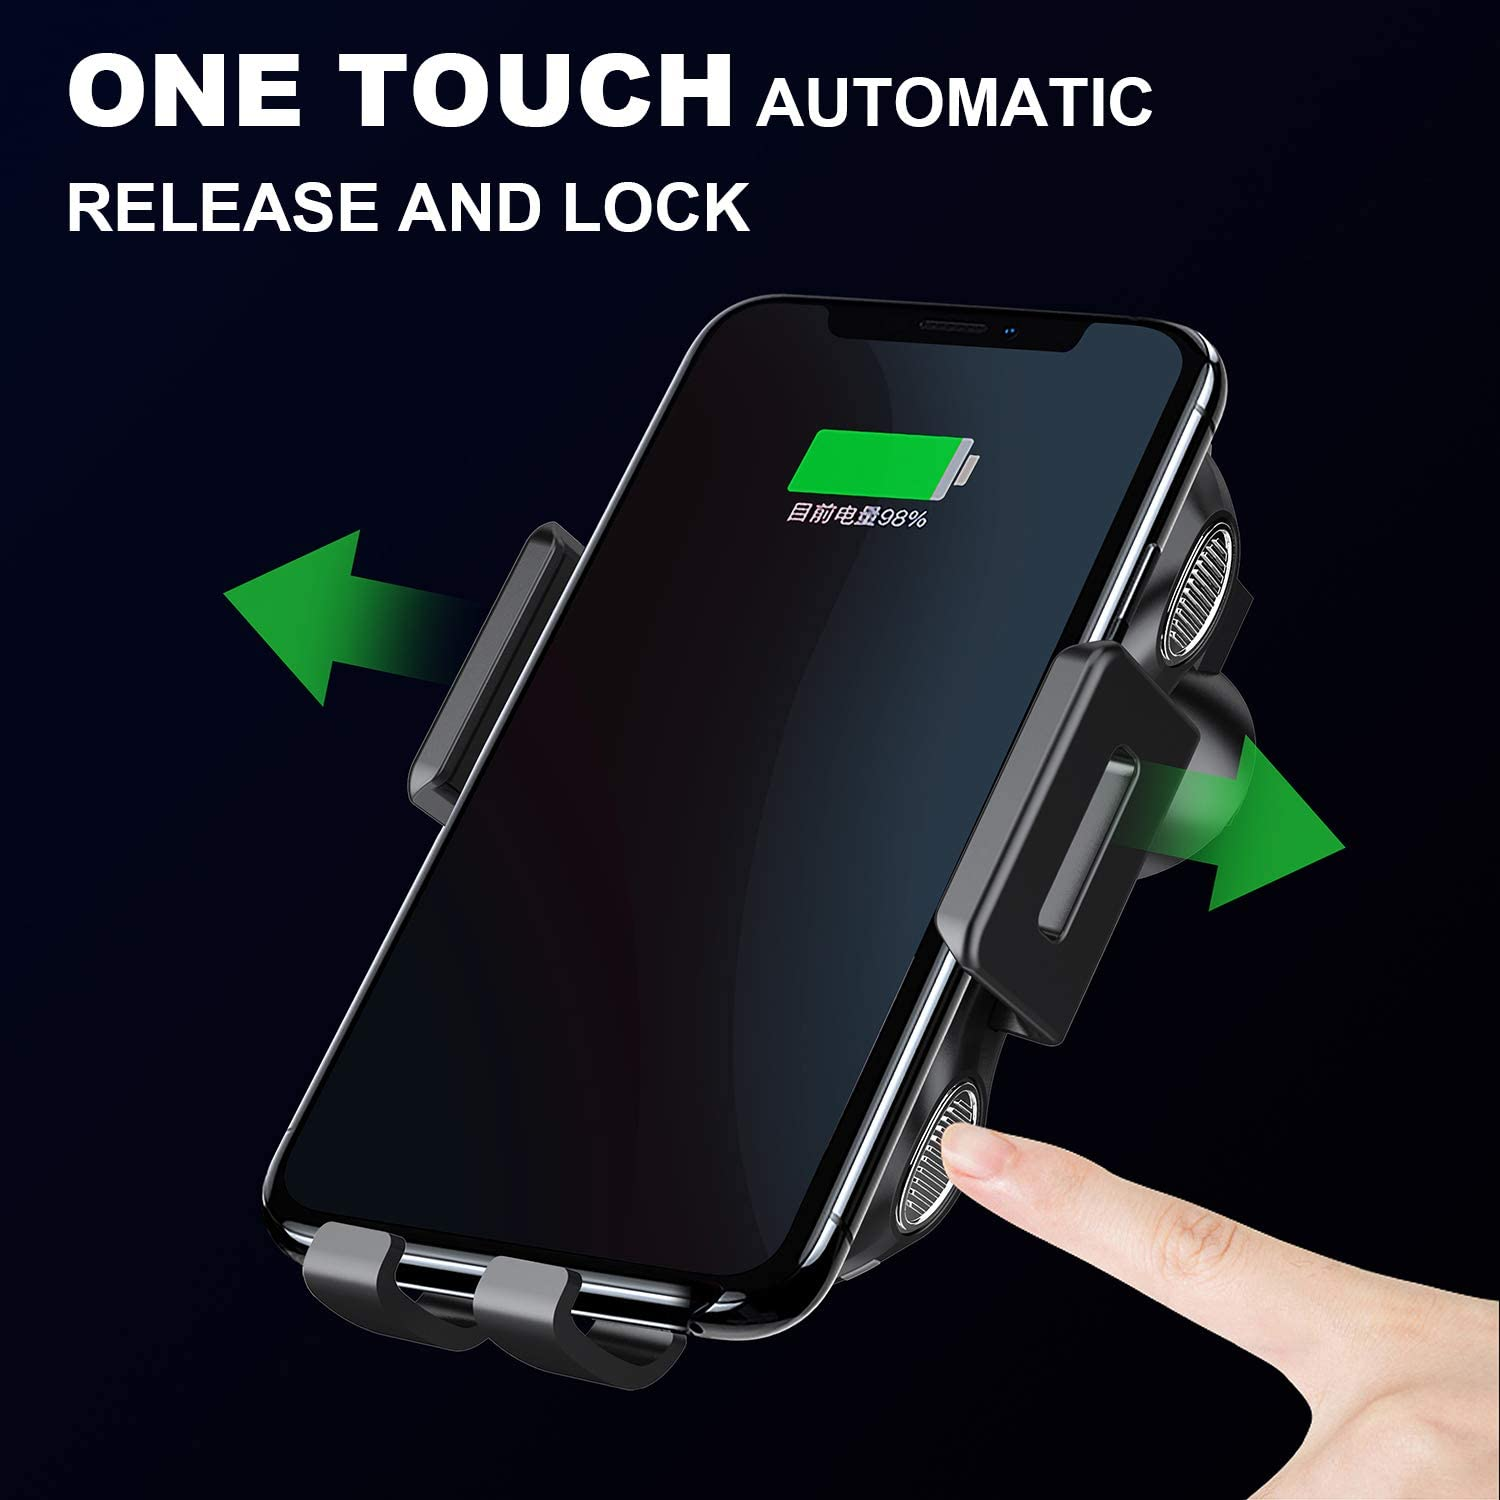 Work with Qi Receivers MyMAX Latest Auto-Clamping Touch Sensor 10W Qi Fast Wireless Car Charger Mount Dashboard Air Vent Car Phone Charging Holder and Cradle for iPhone or Any Smart Phone Samsung